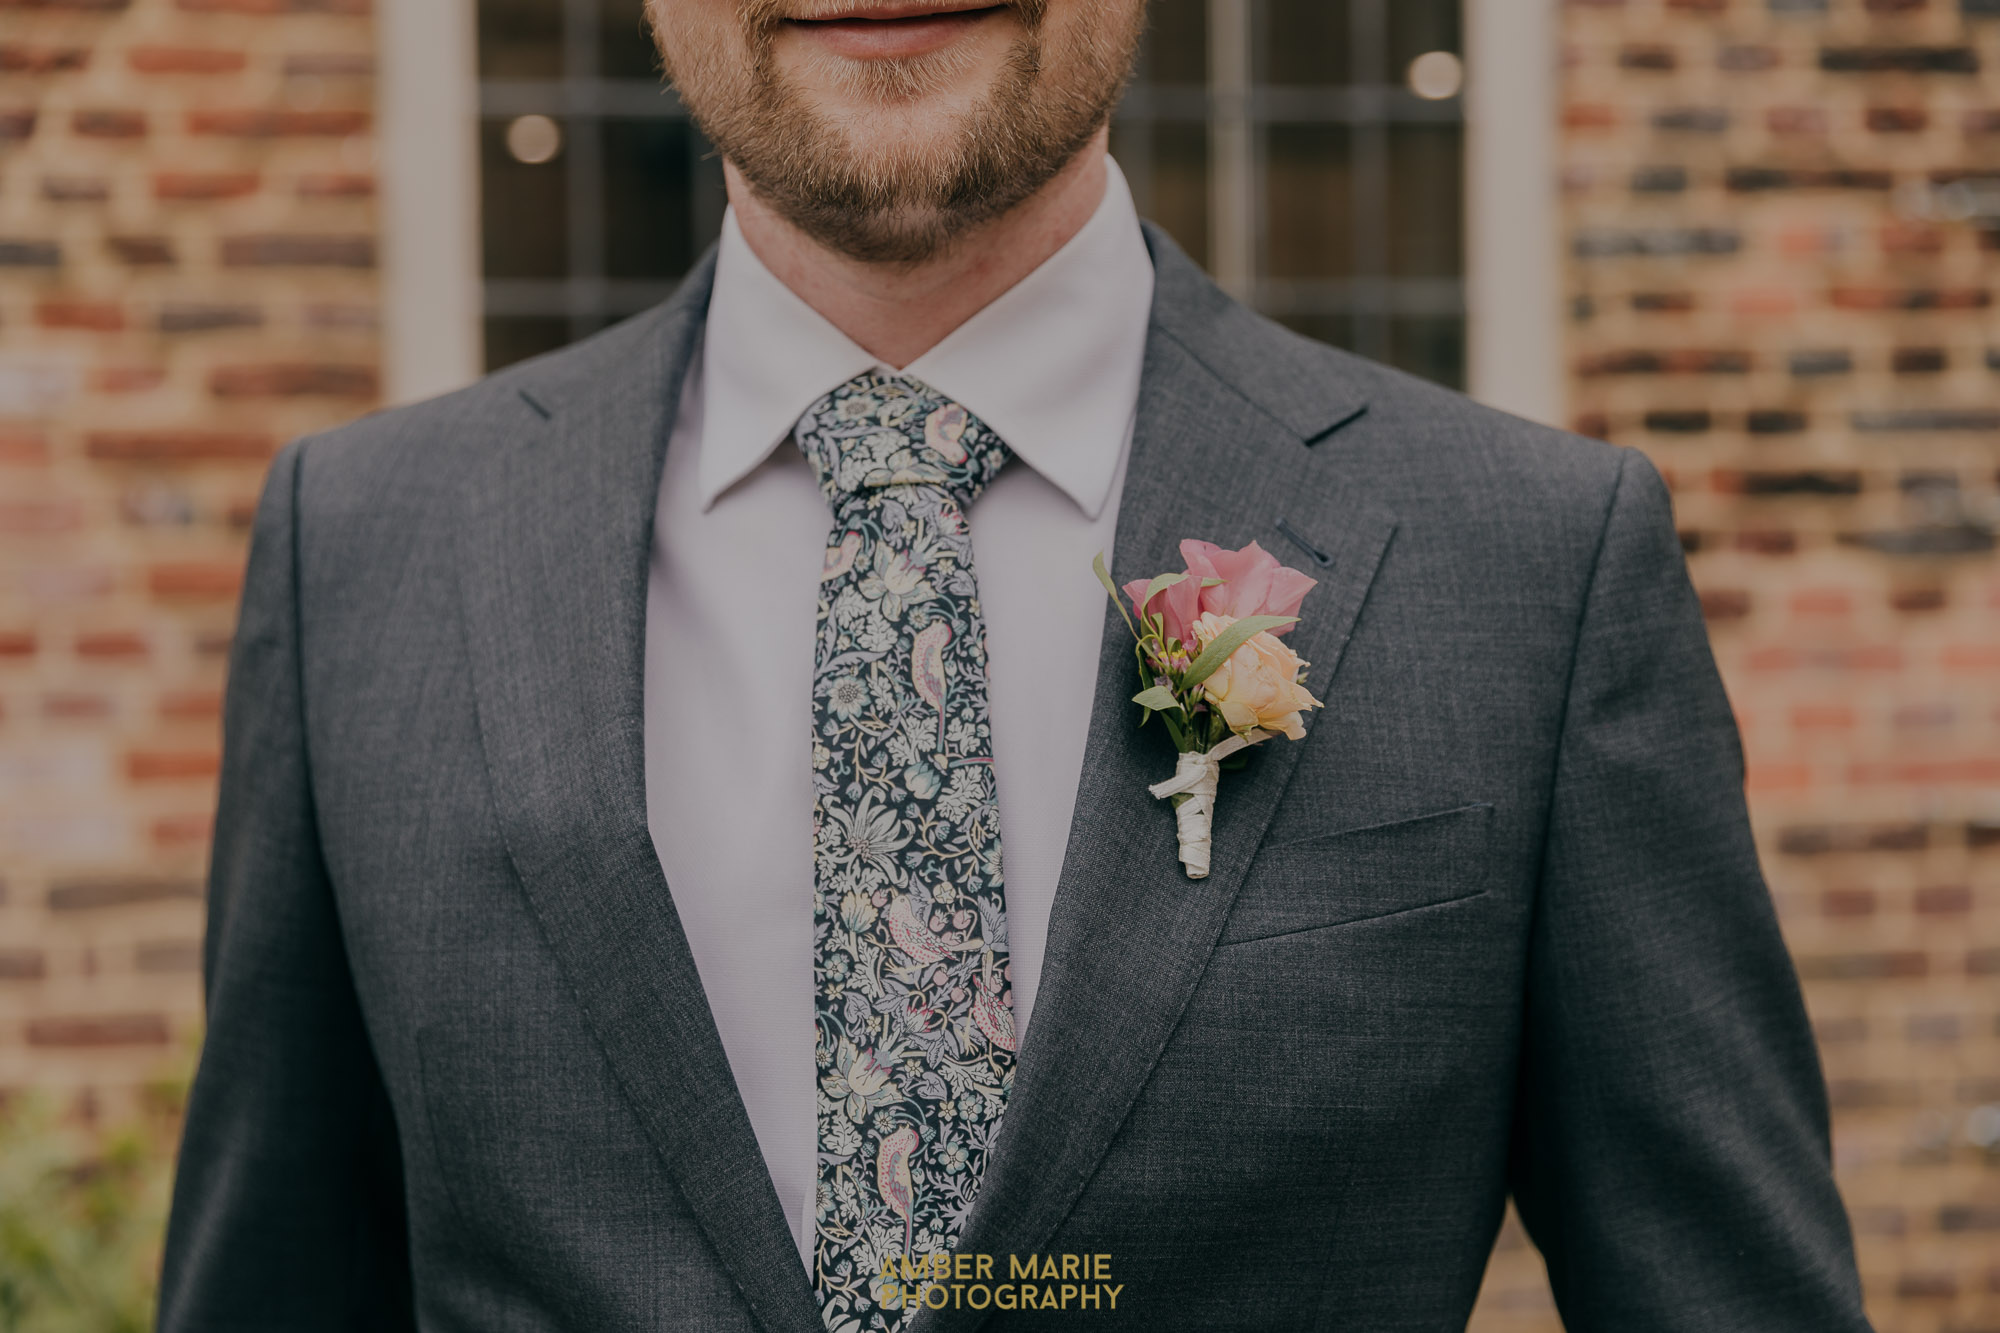 Groom wearing William Morris Tie and pastel buttonhole